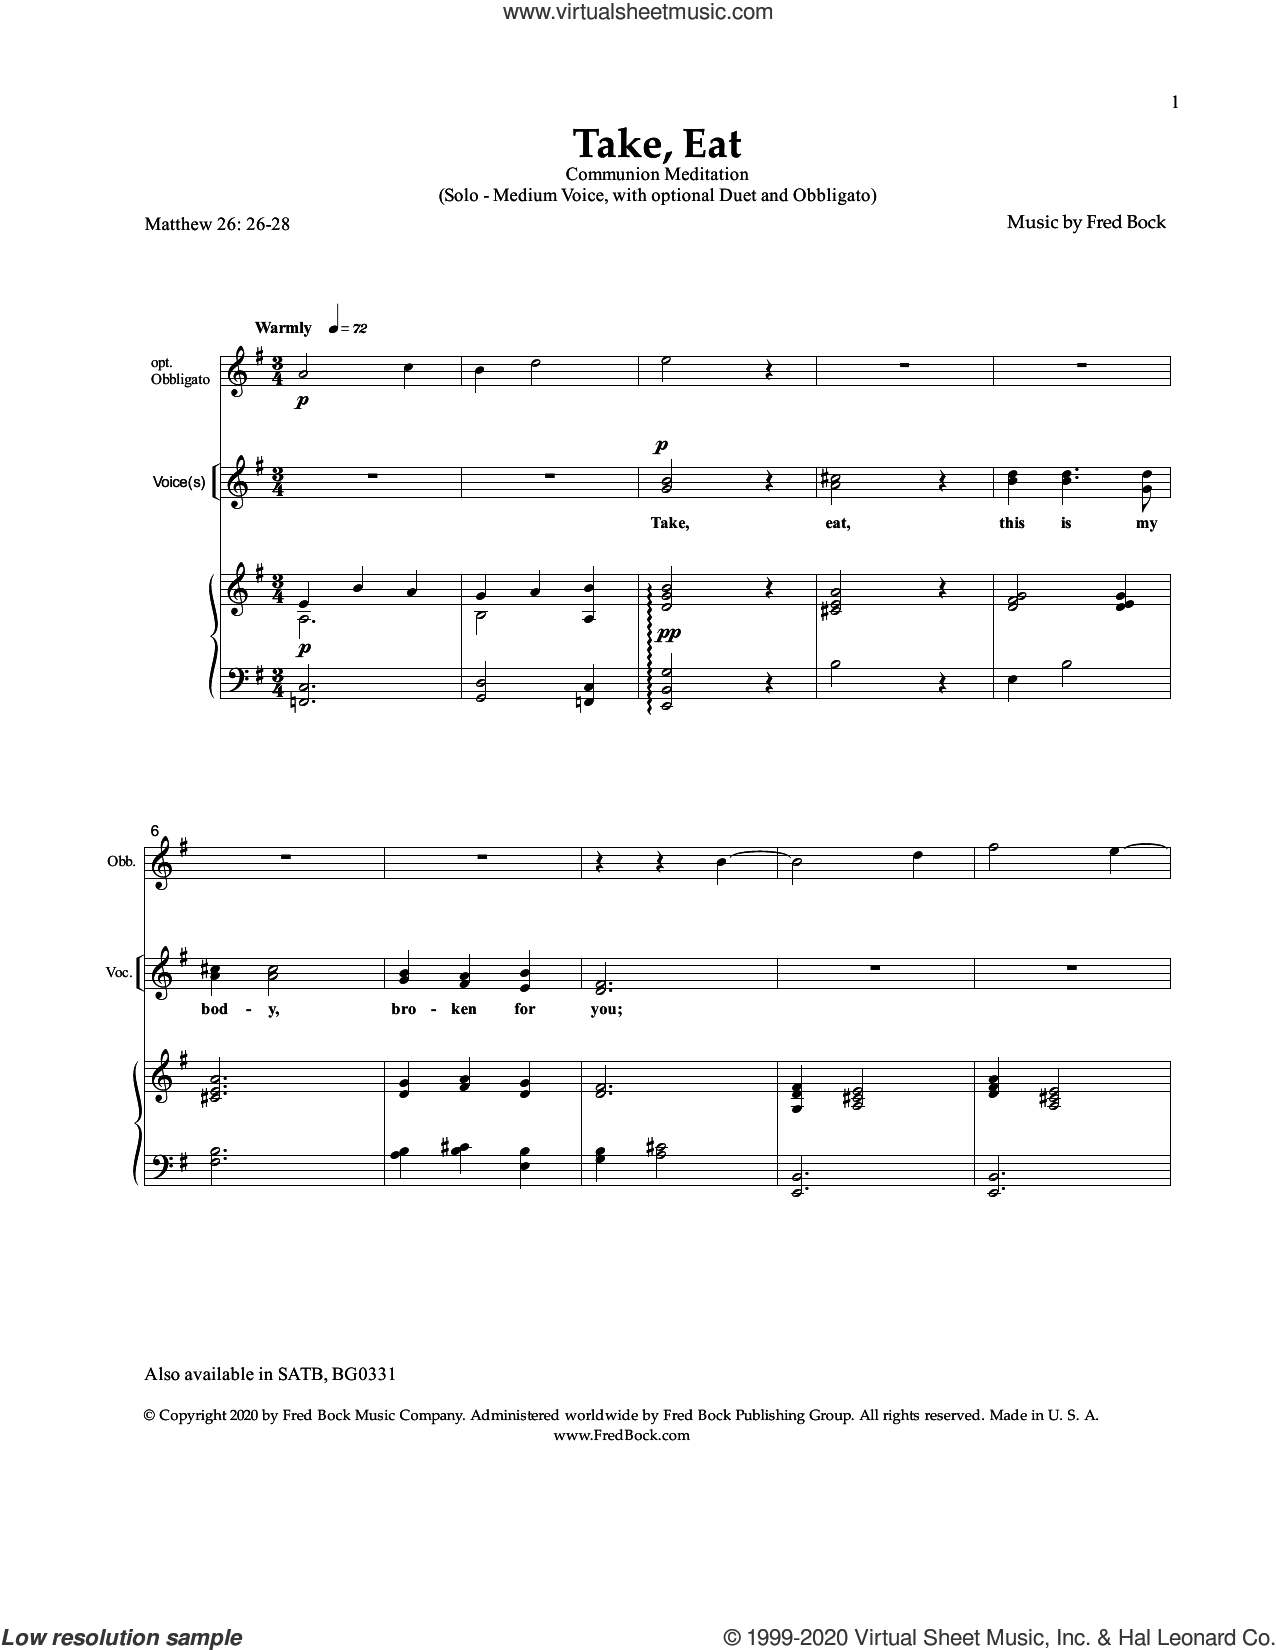 Take, Eat sheet music for voice and piano by Fred Bock, intermediate skill level